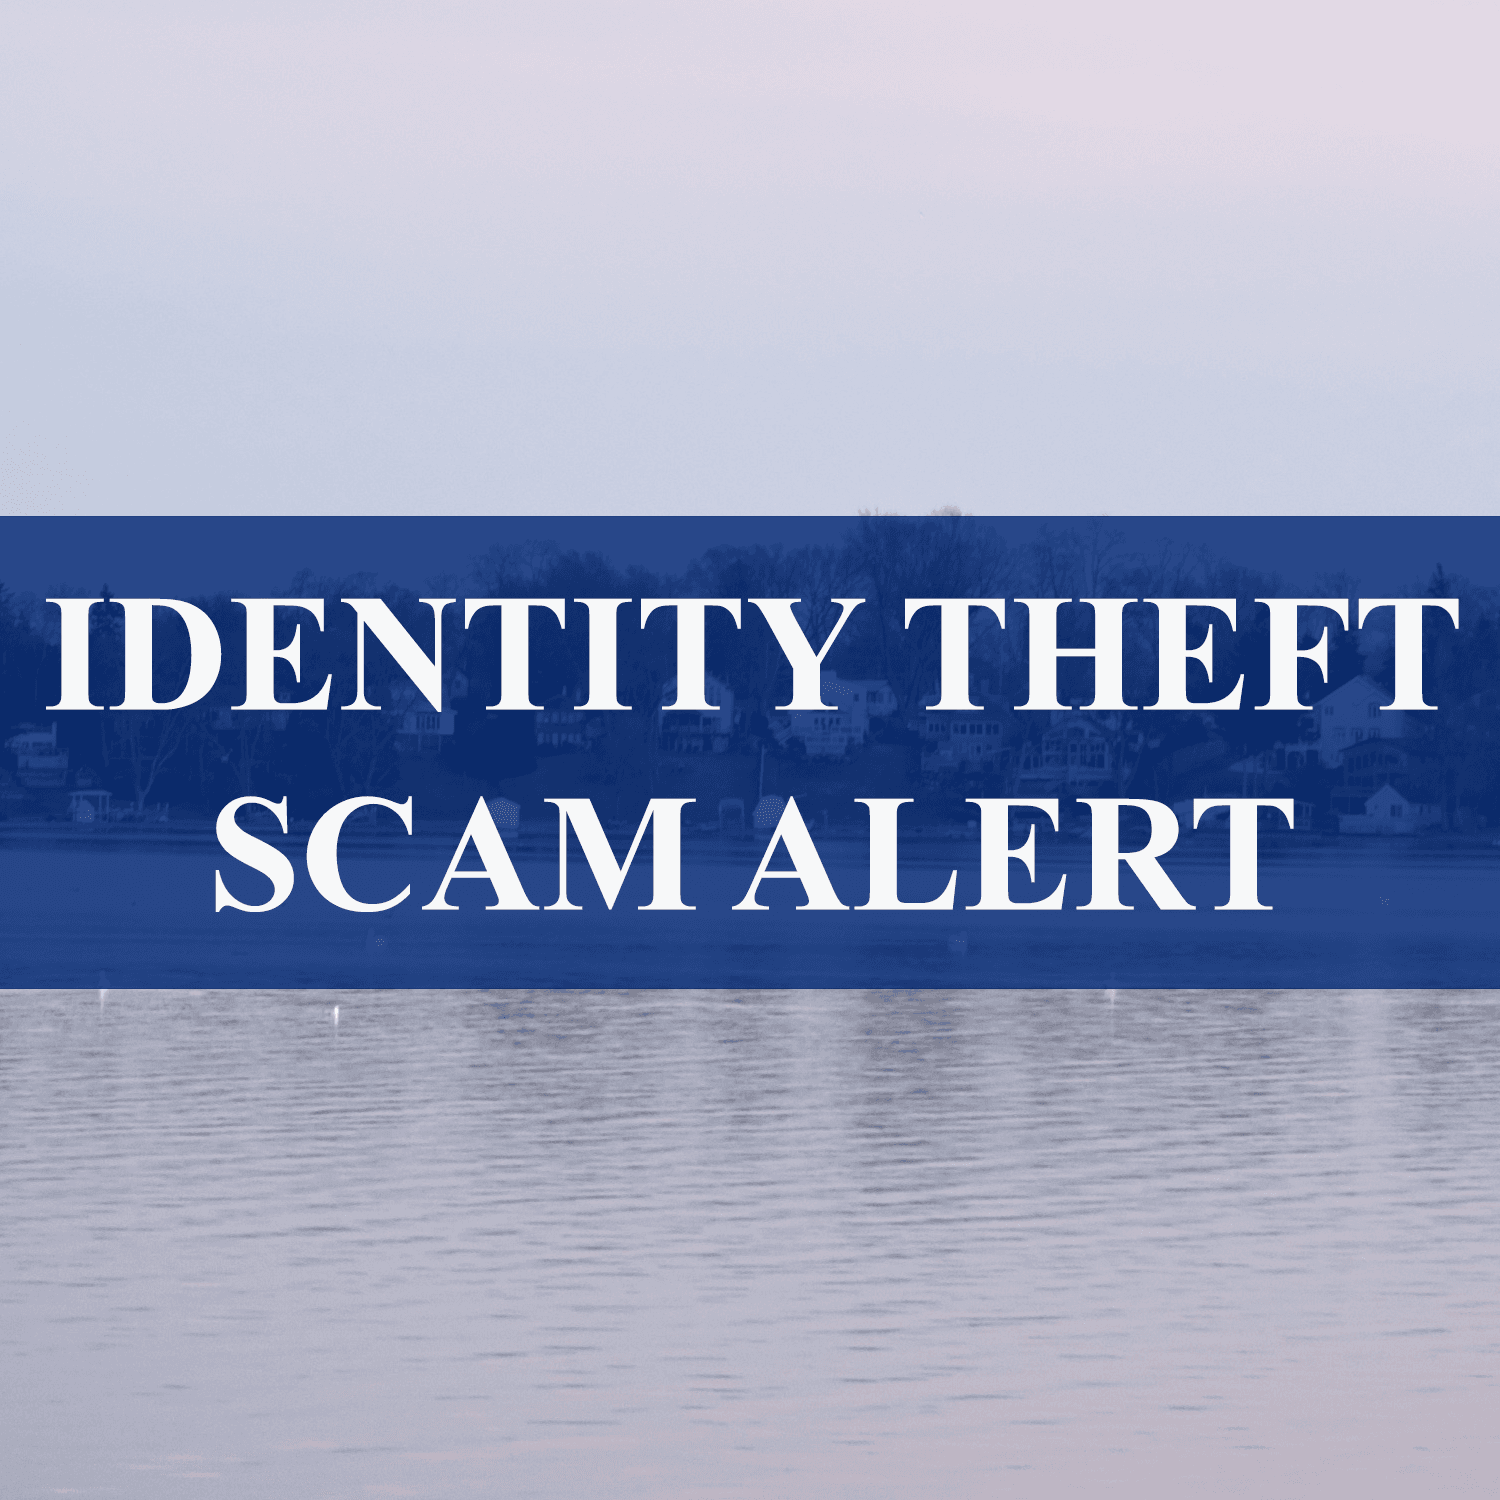 IDENITITY THEFT SCAM ALERT